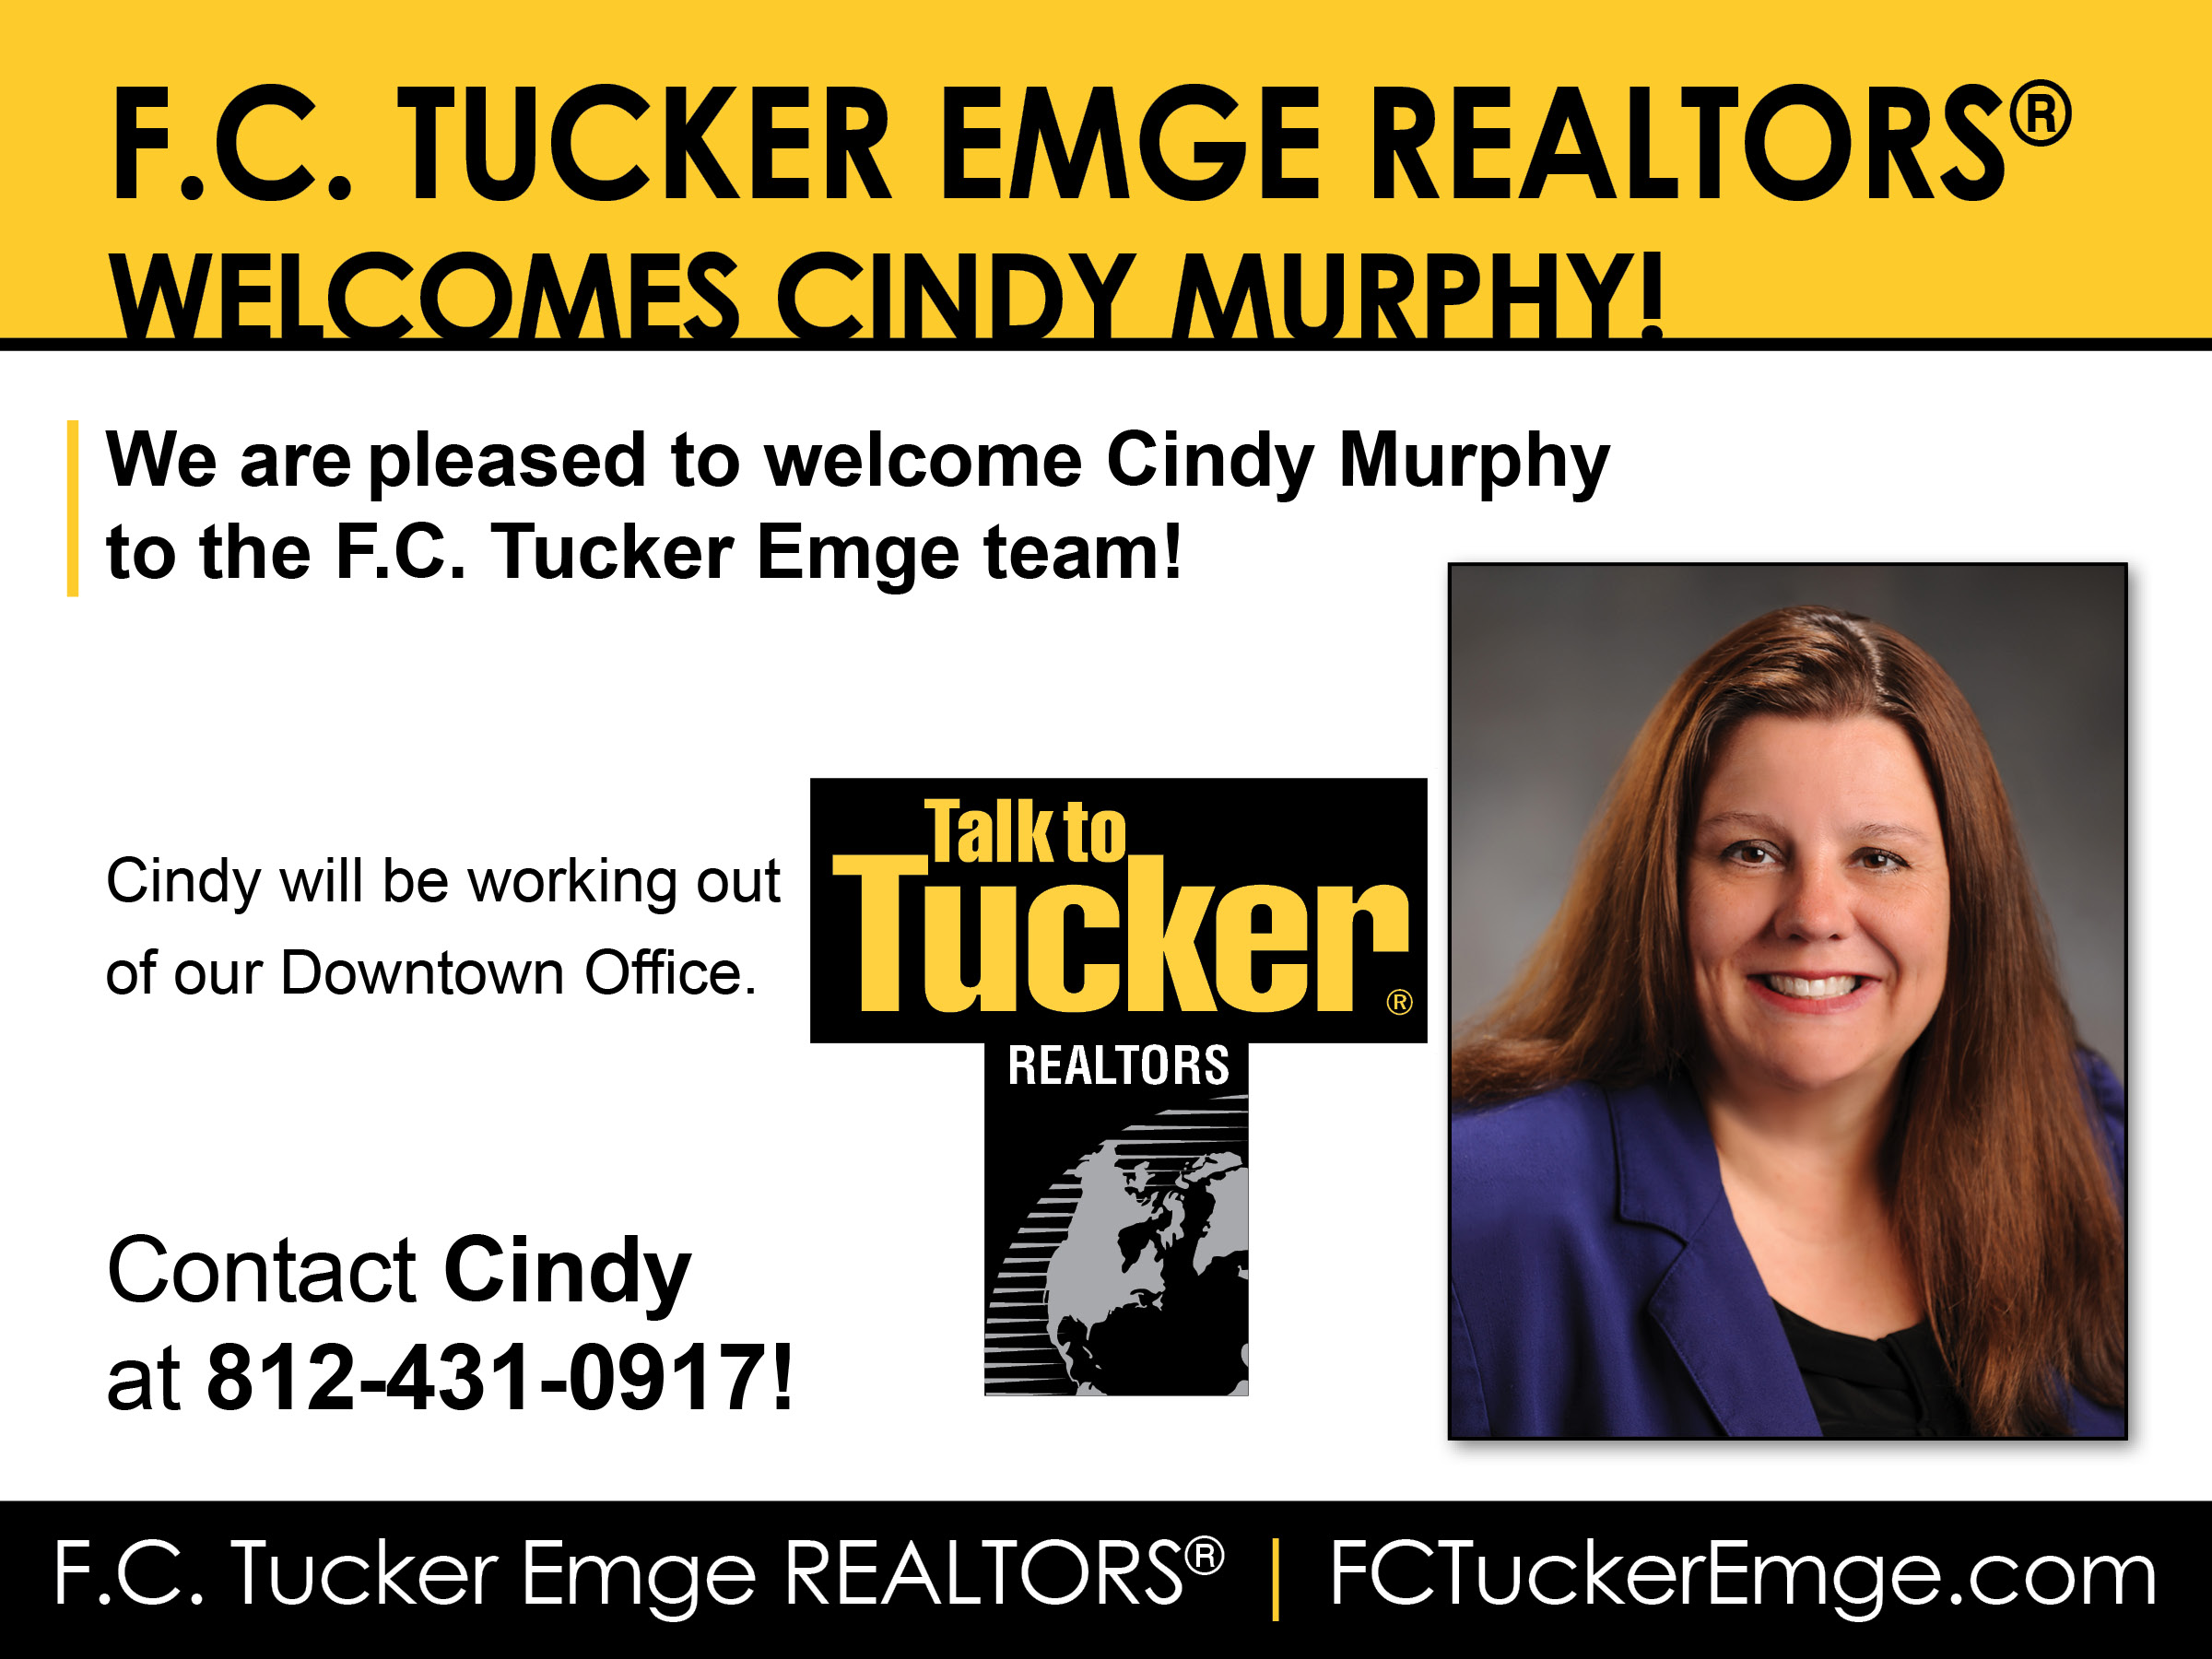 PLEASE WELCOME CINDY MURPHY TO THE F.C. TUCKER EMGE TEAM!